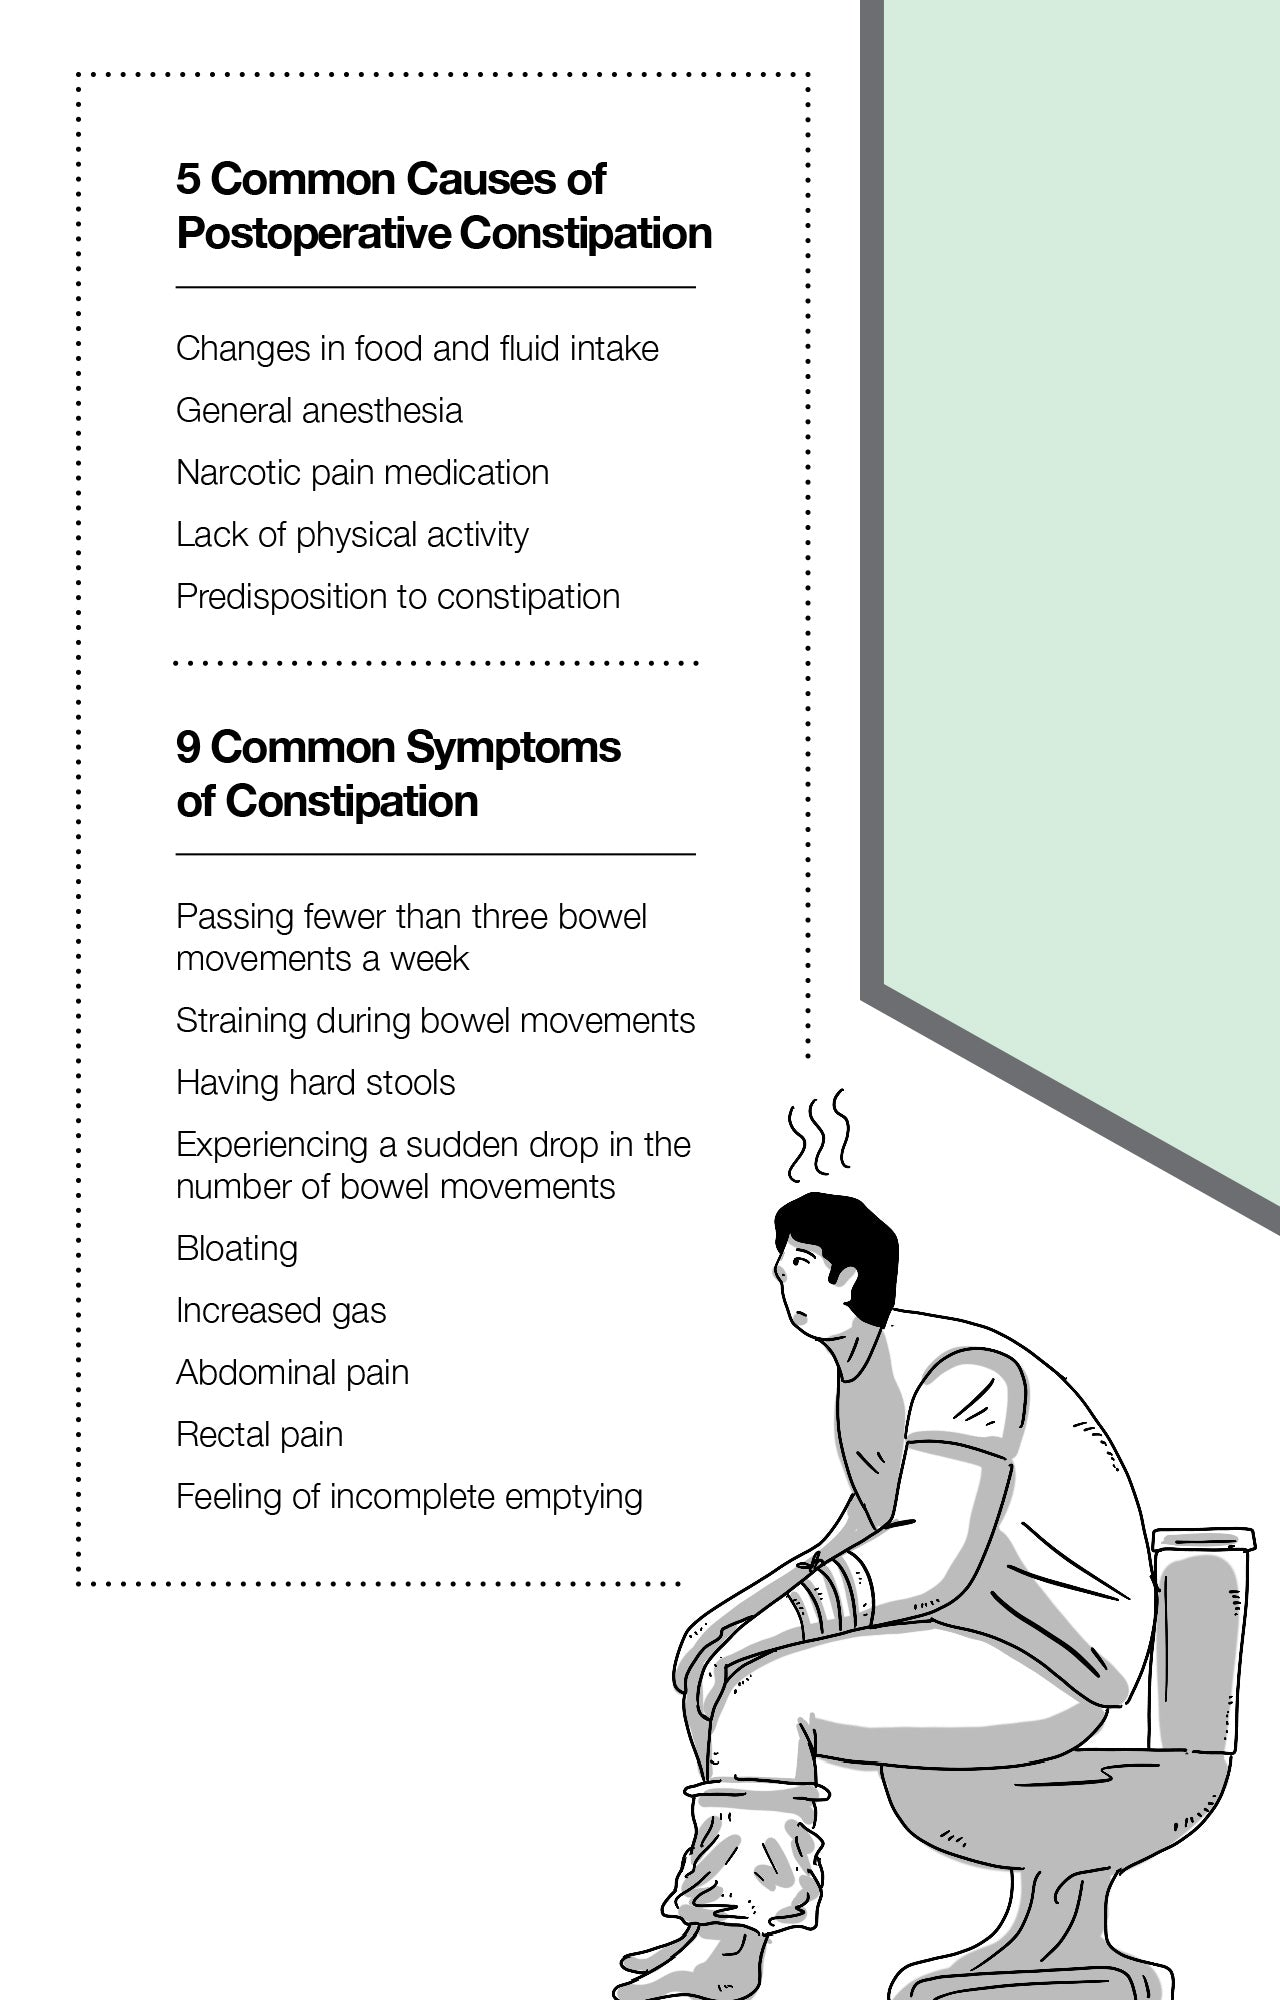 5 Common Causes of Postoperative Constipation